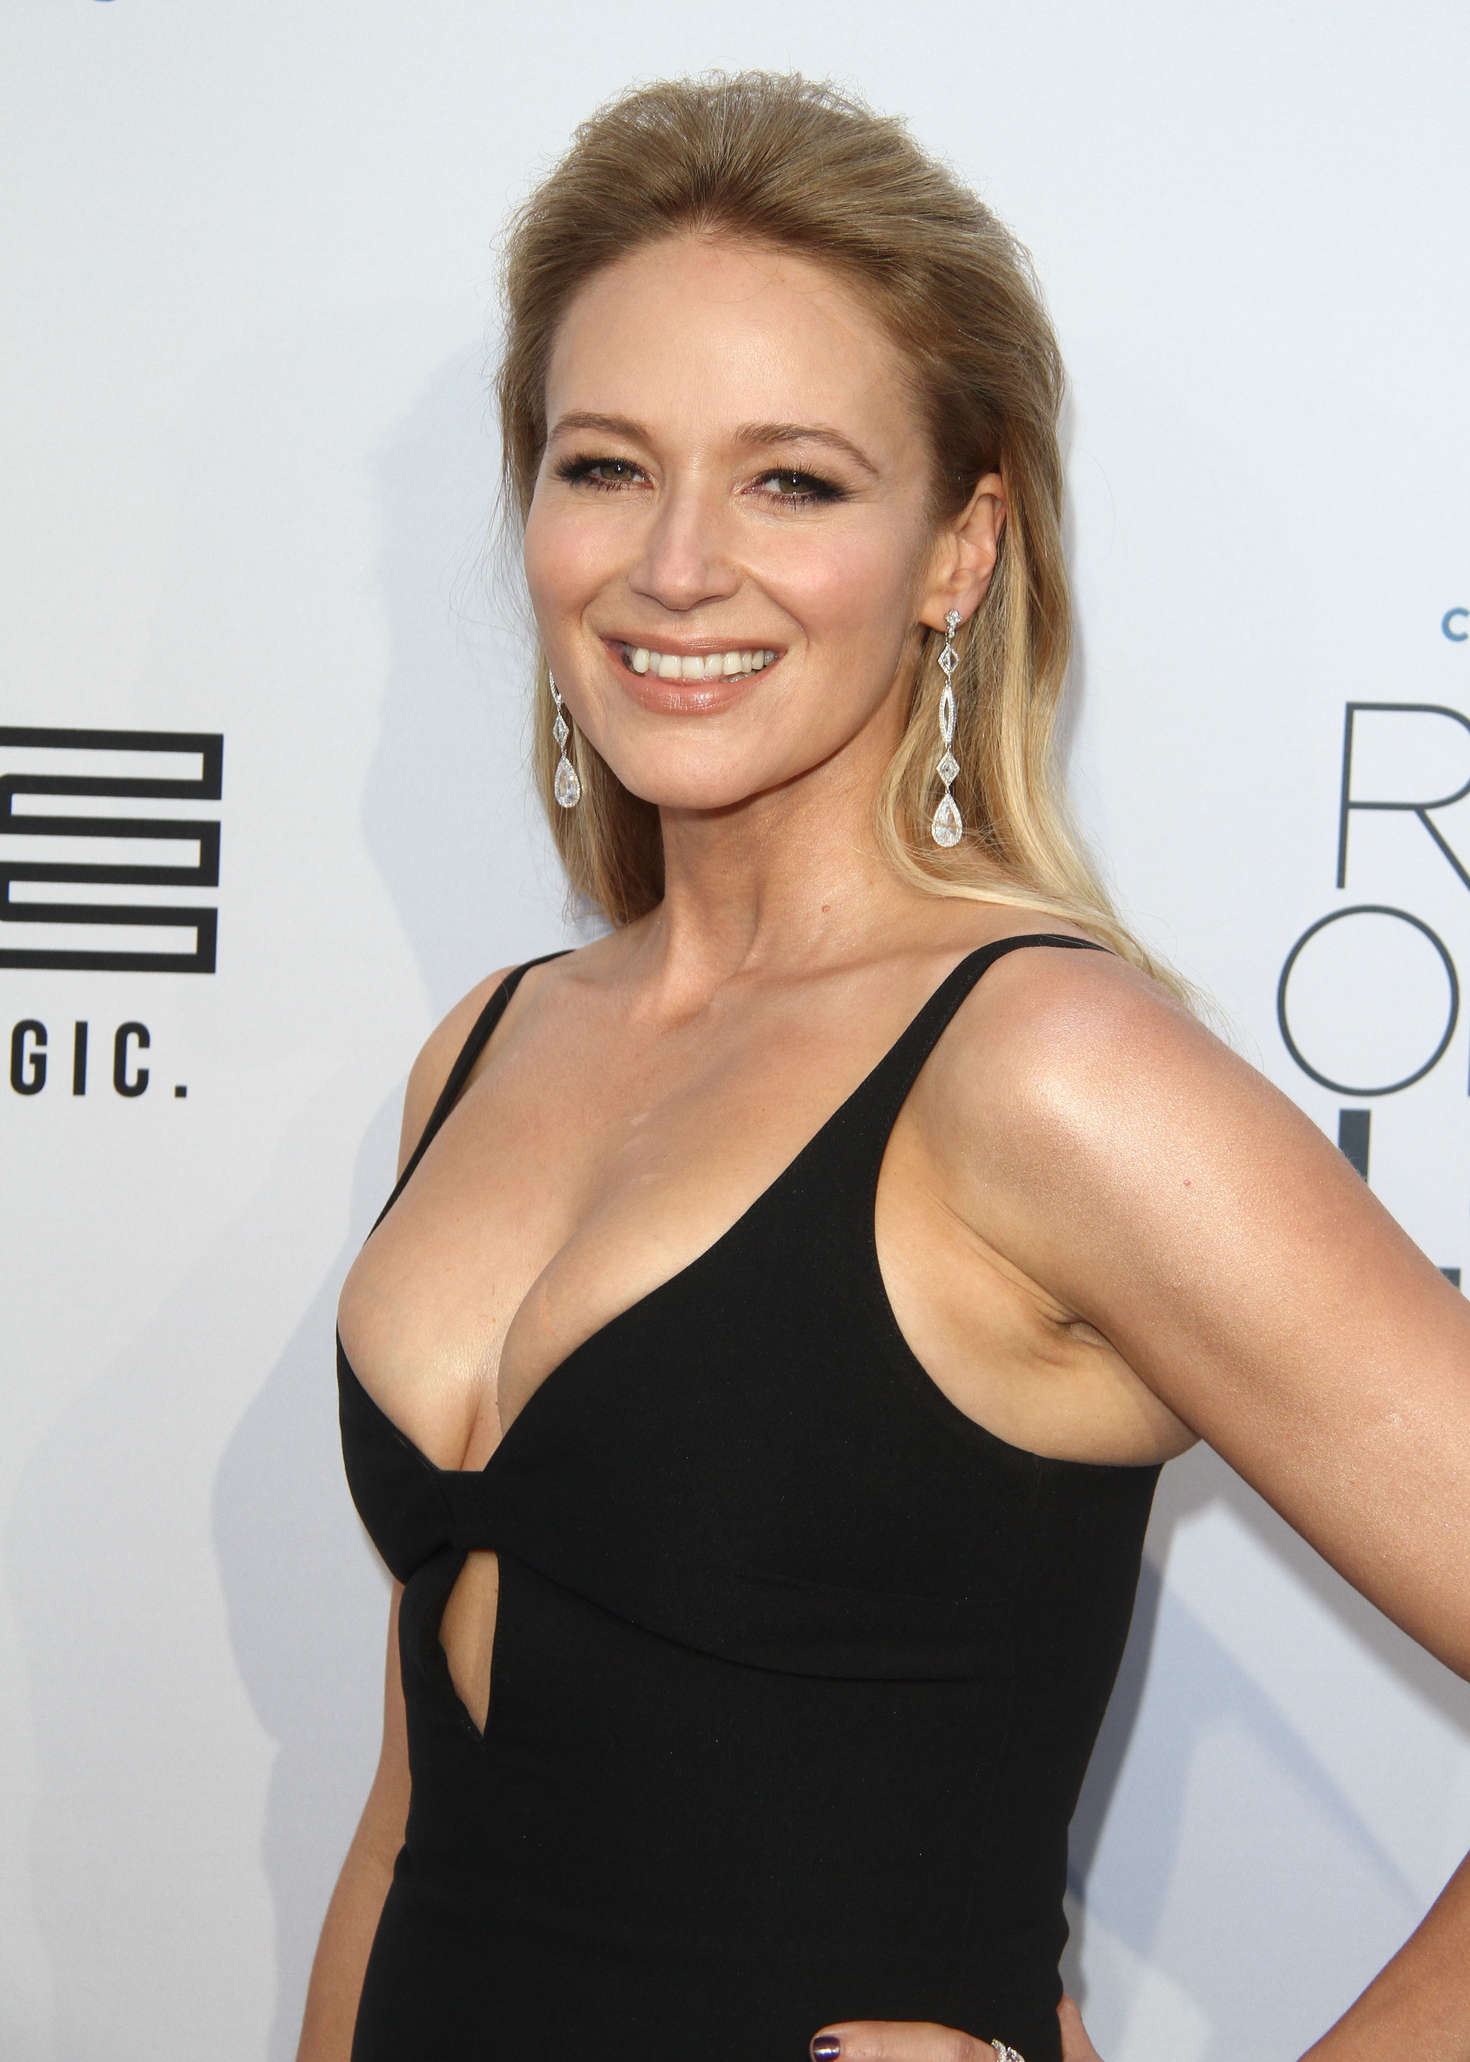 Jewel: Comedy Central Roast of Rob Lowe -13